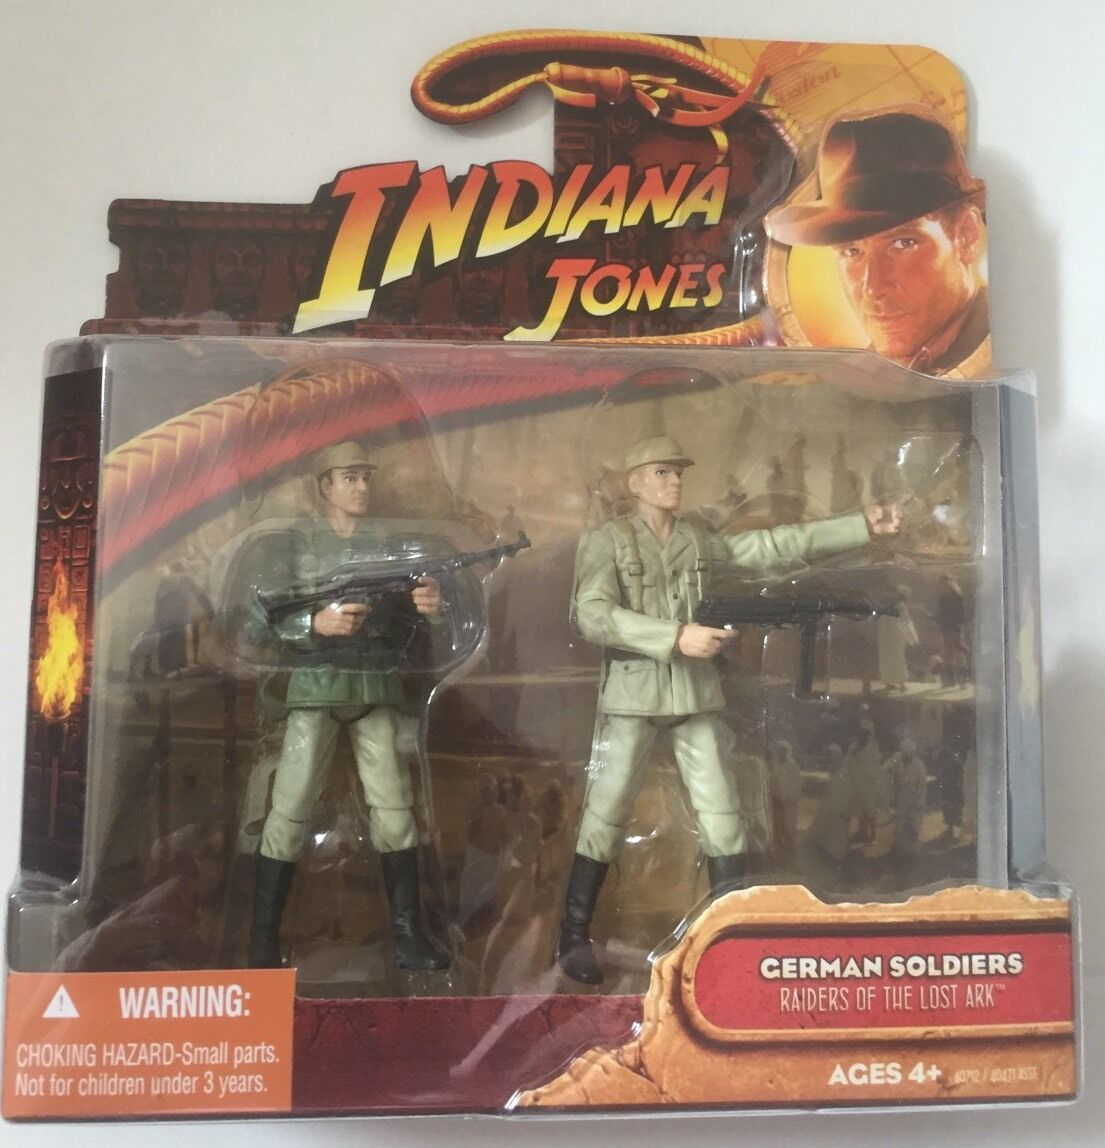 Indiana Jones Action Figure of 2 GERMAN SOLDIERS  From The Lost Ark 3.75  Tall